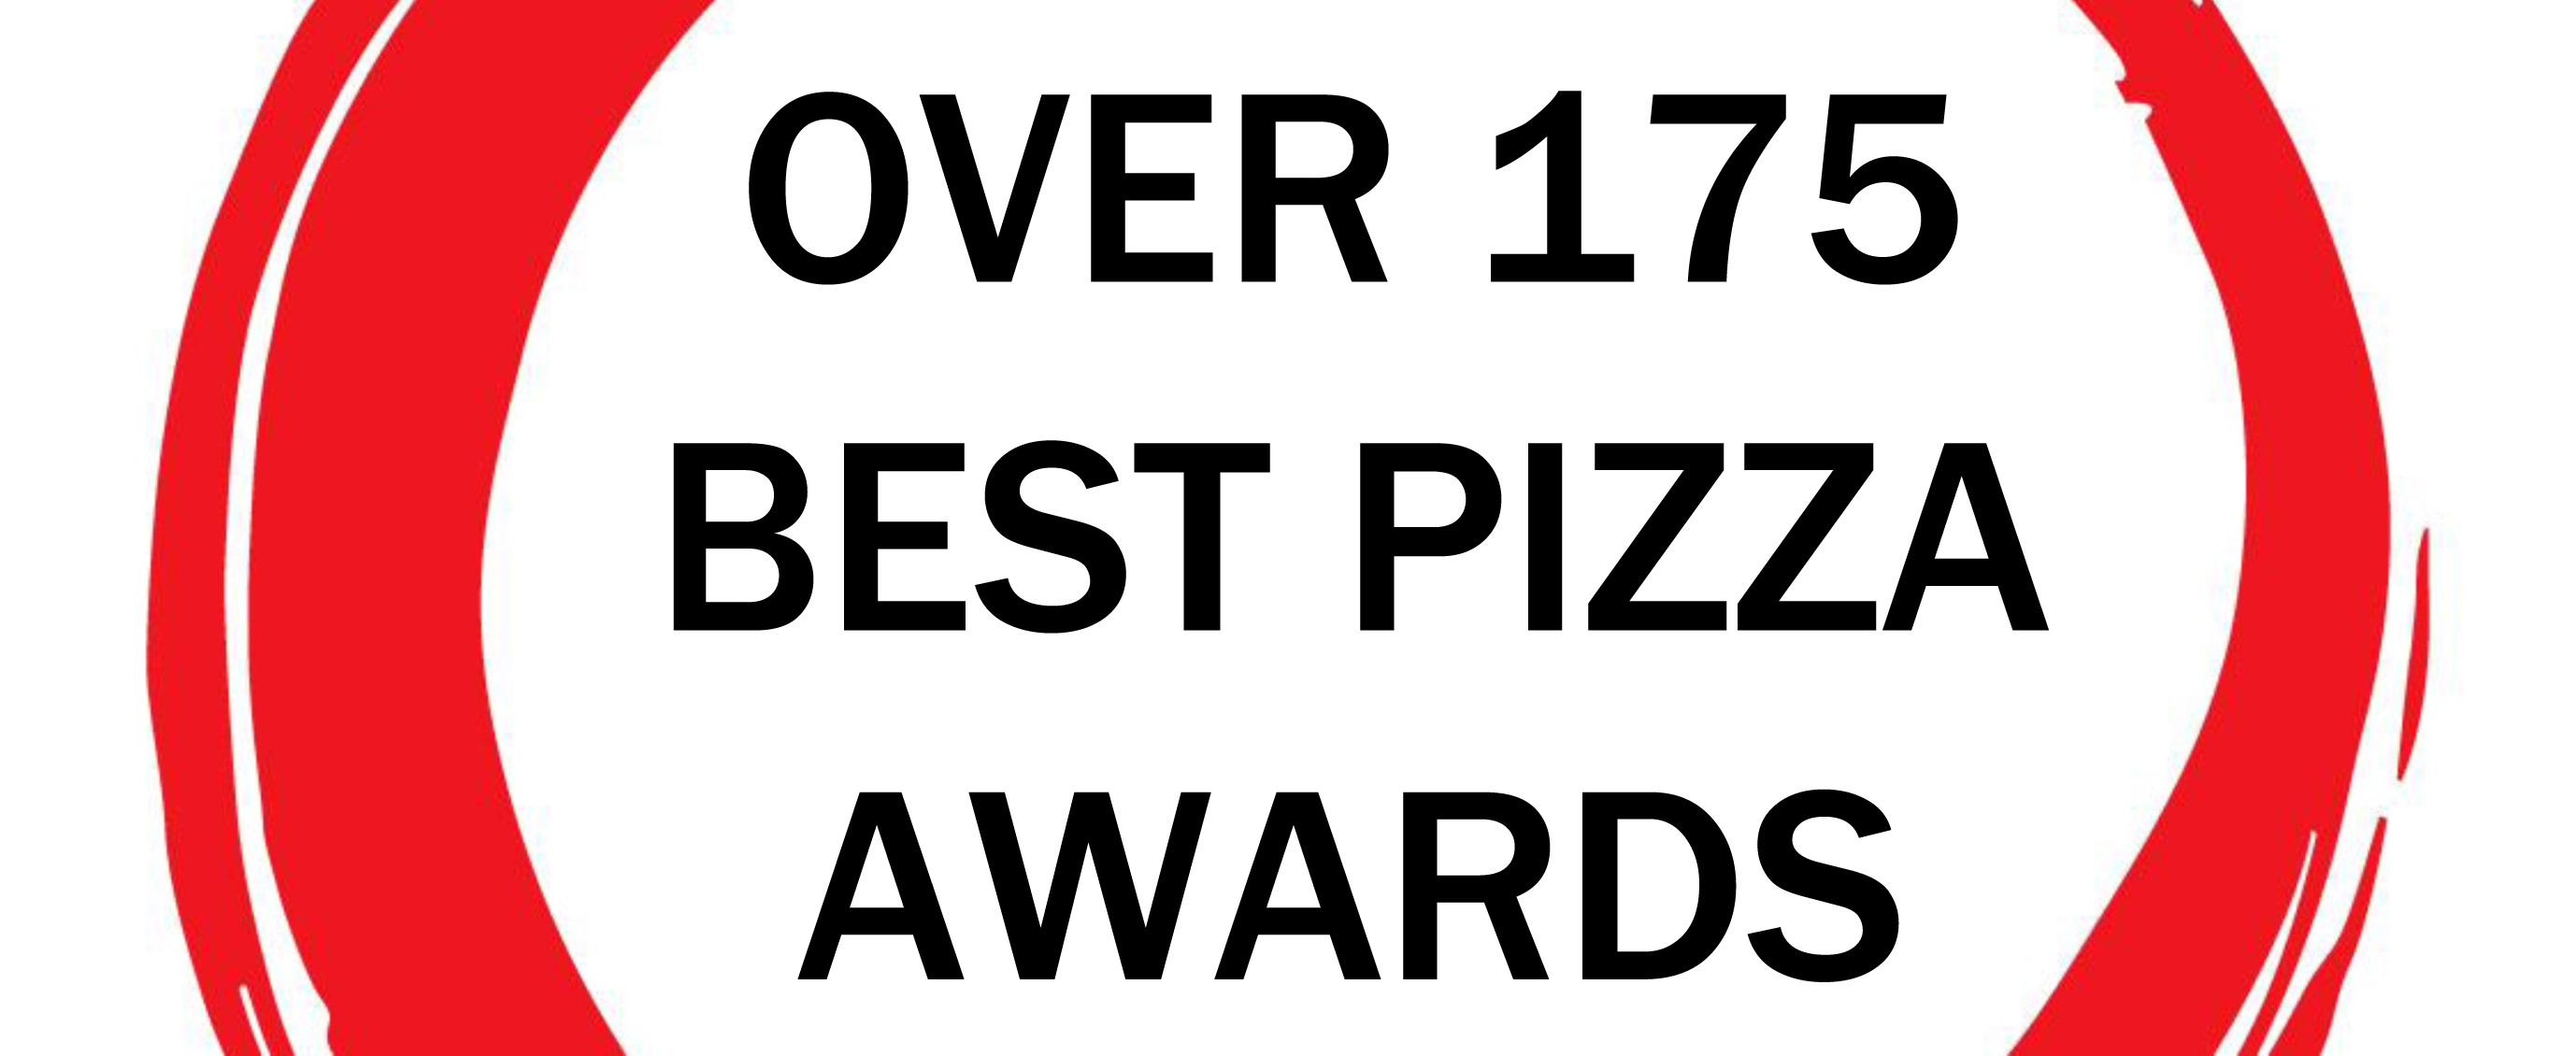 175 BEST PIZZA AWARDS homepage